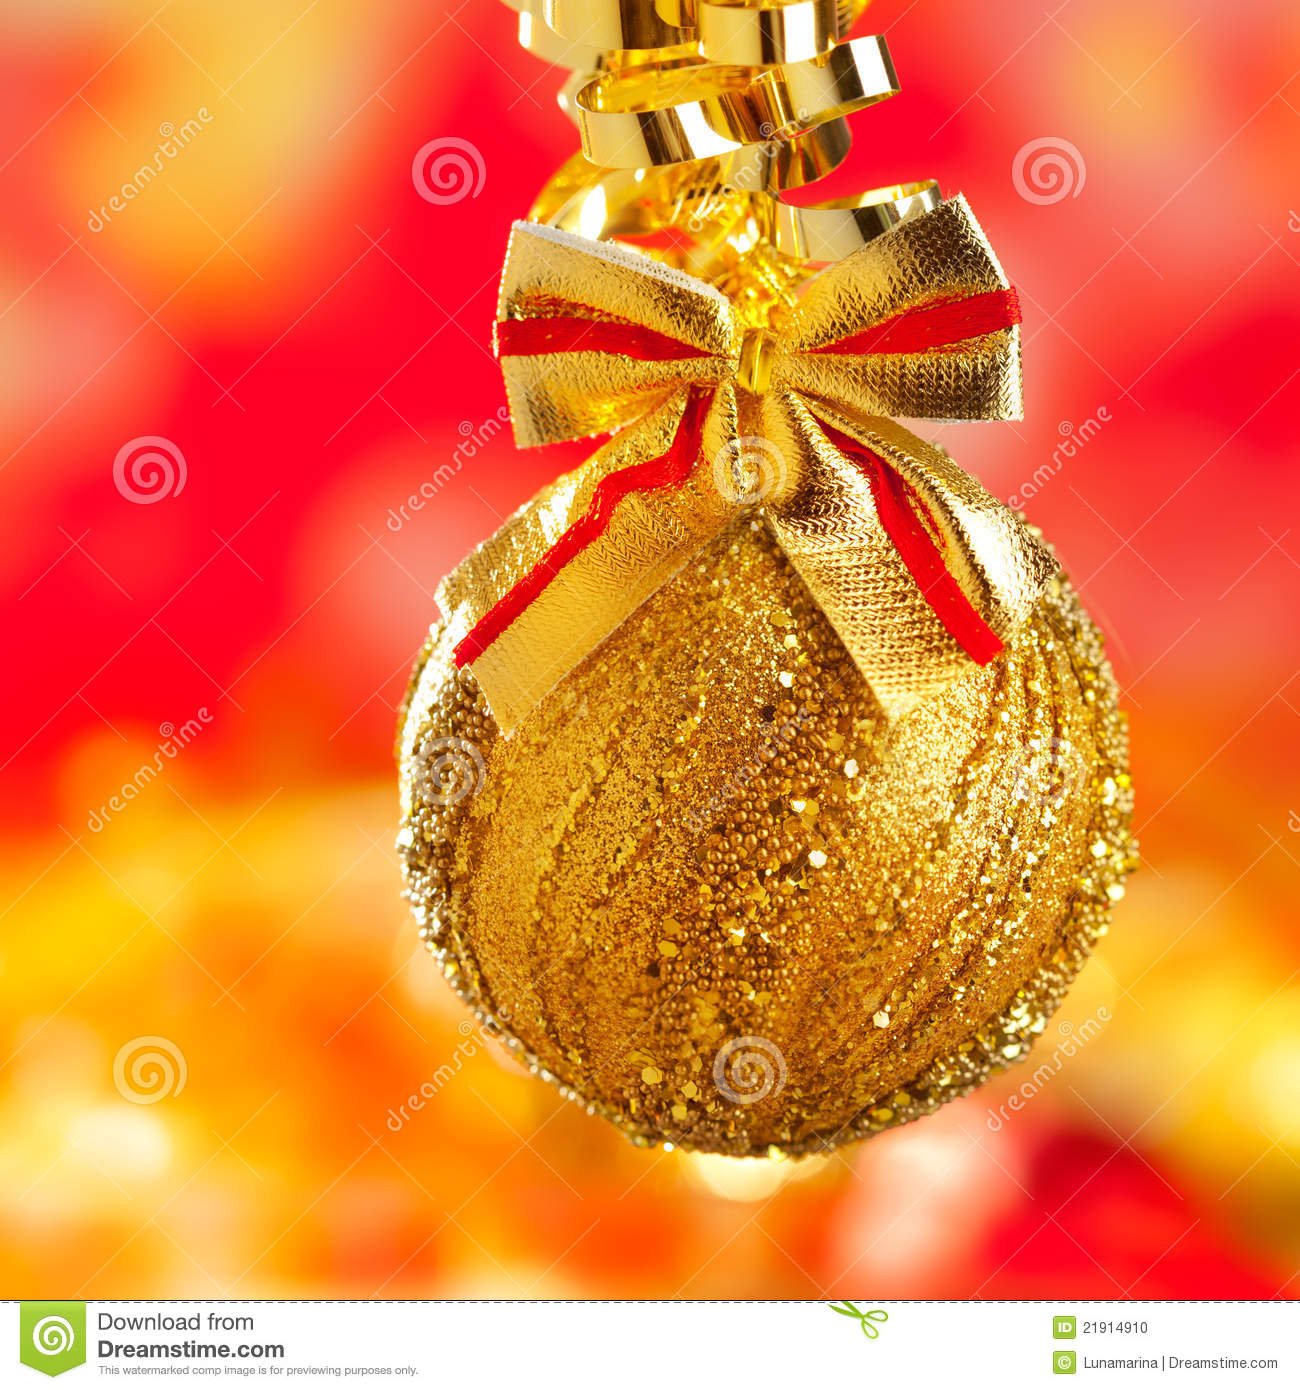 Christmas tinsel golden glitter bauble loop